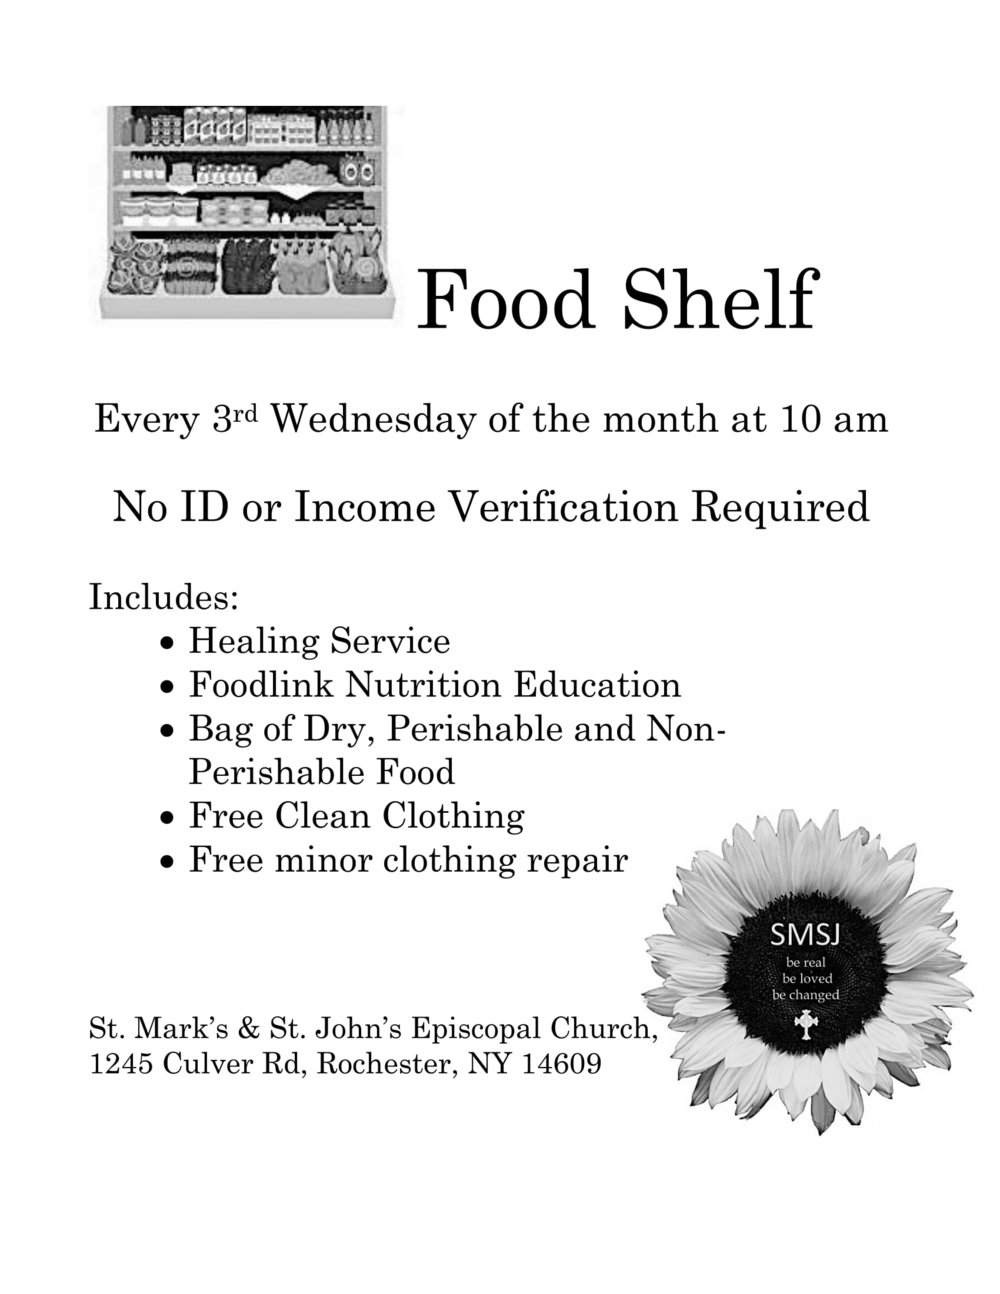 Food Shelf Flyer-1.jpg